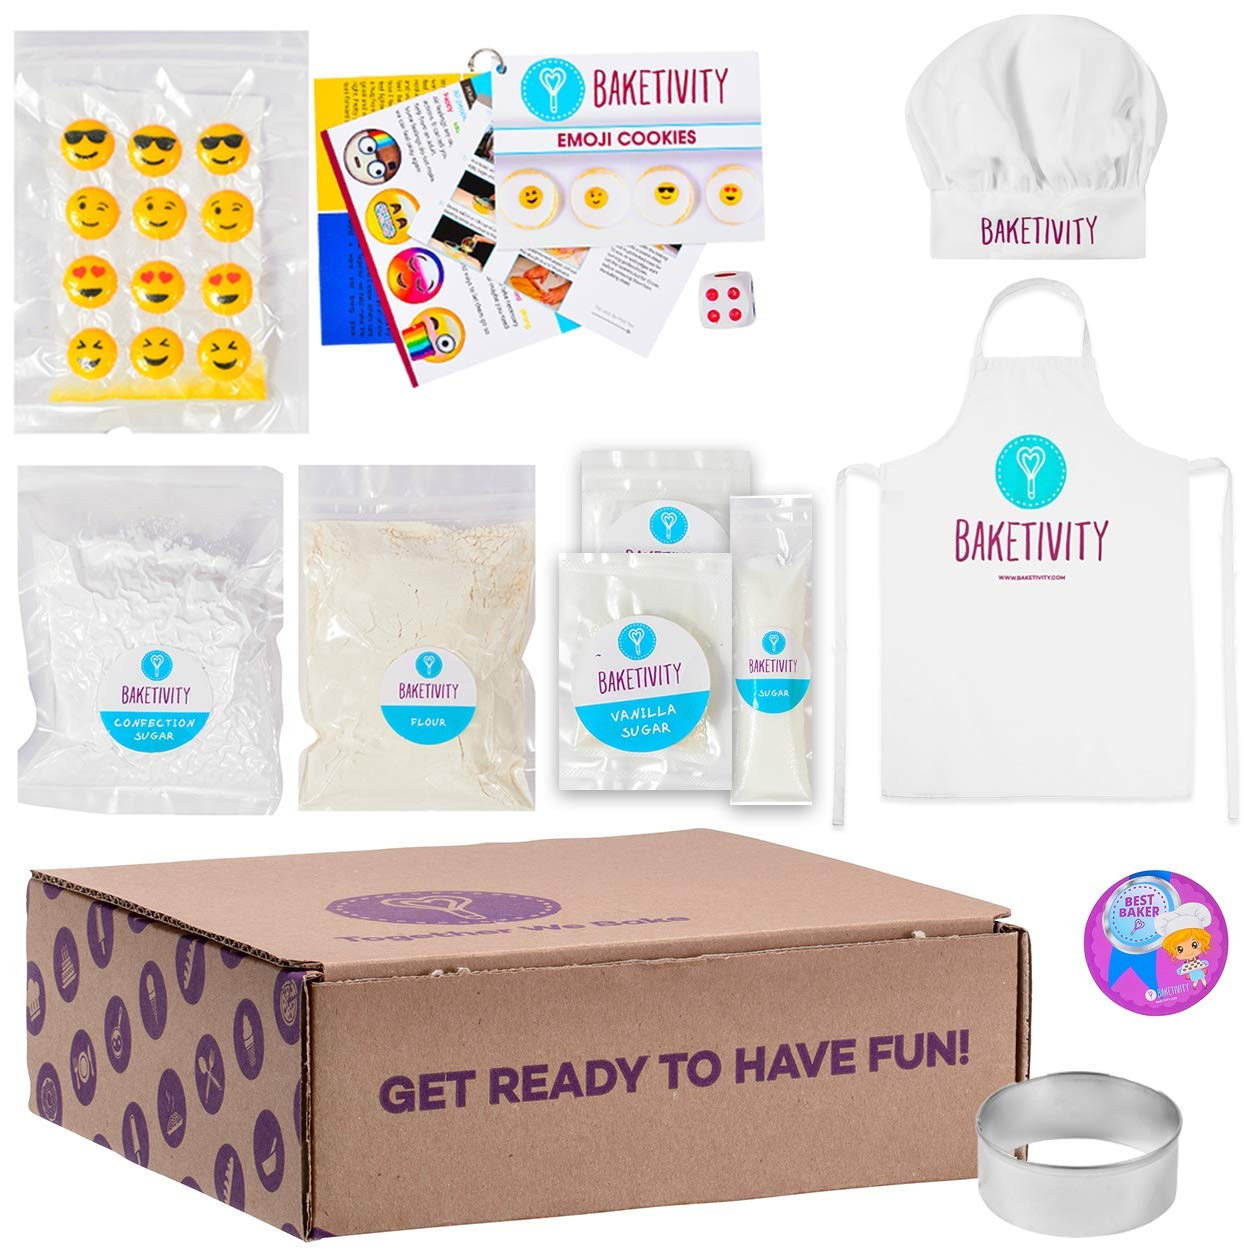 BAKETIVITY Kids Baking DIY Activity Kit - Bake Delicious Emoji Cookies With Pre-Measured Ingredients - Best Gift Idea For Boys And Girls Ages 6-12 - Includes FREE Hat and Apron